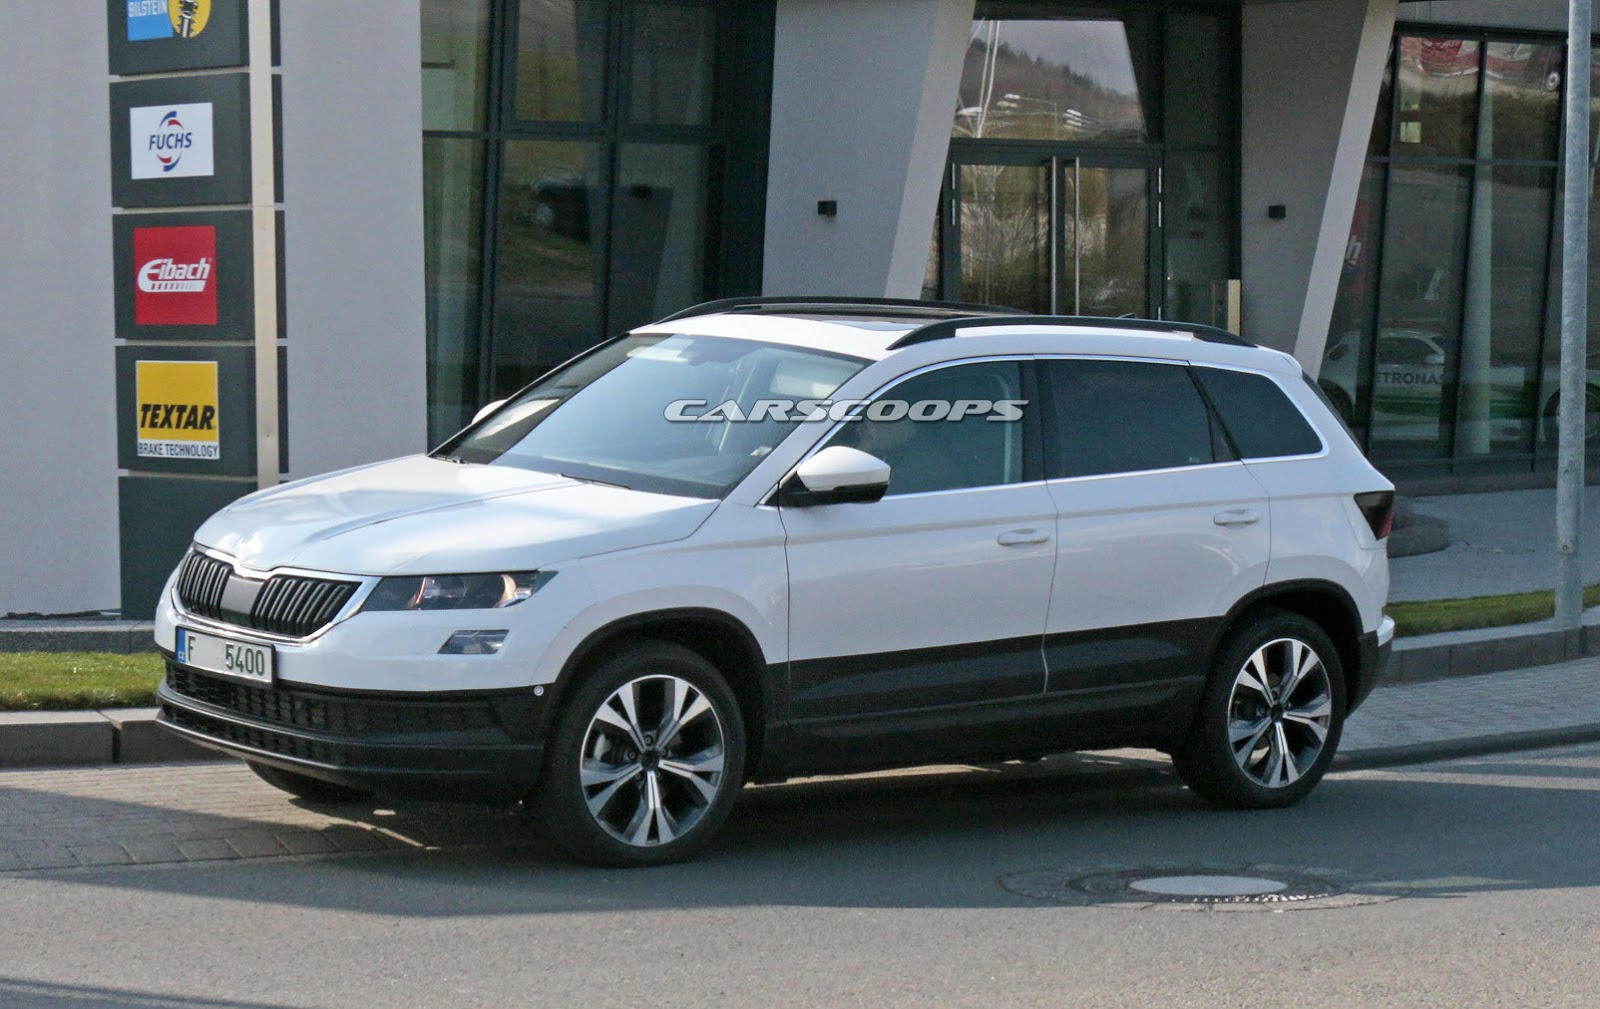 skoda 39 s new compact suv named karoq debuts on may 18 carscoops. Black Bedroom Furniture Sets. Home Design Ideas